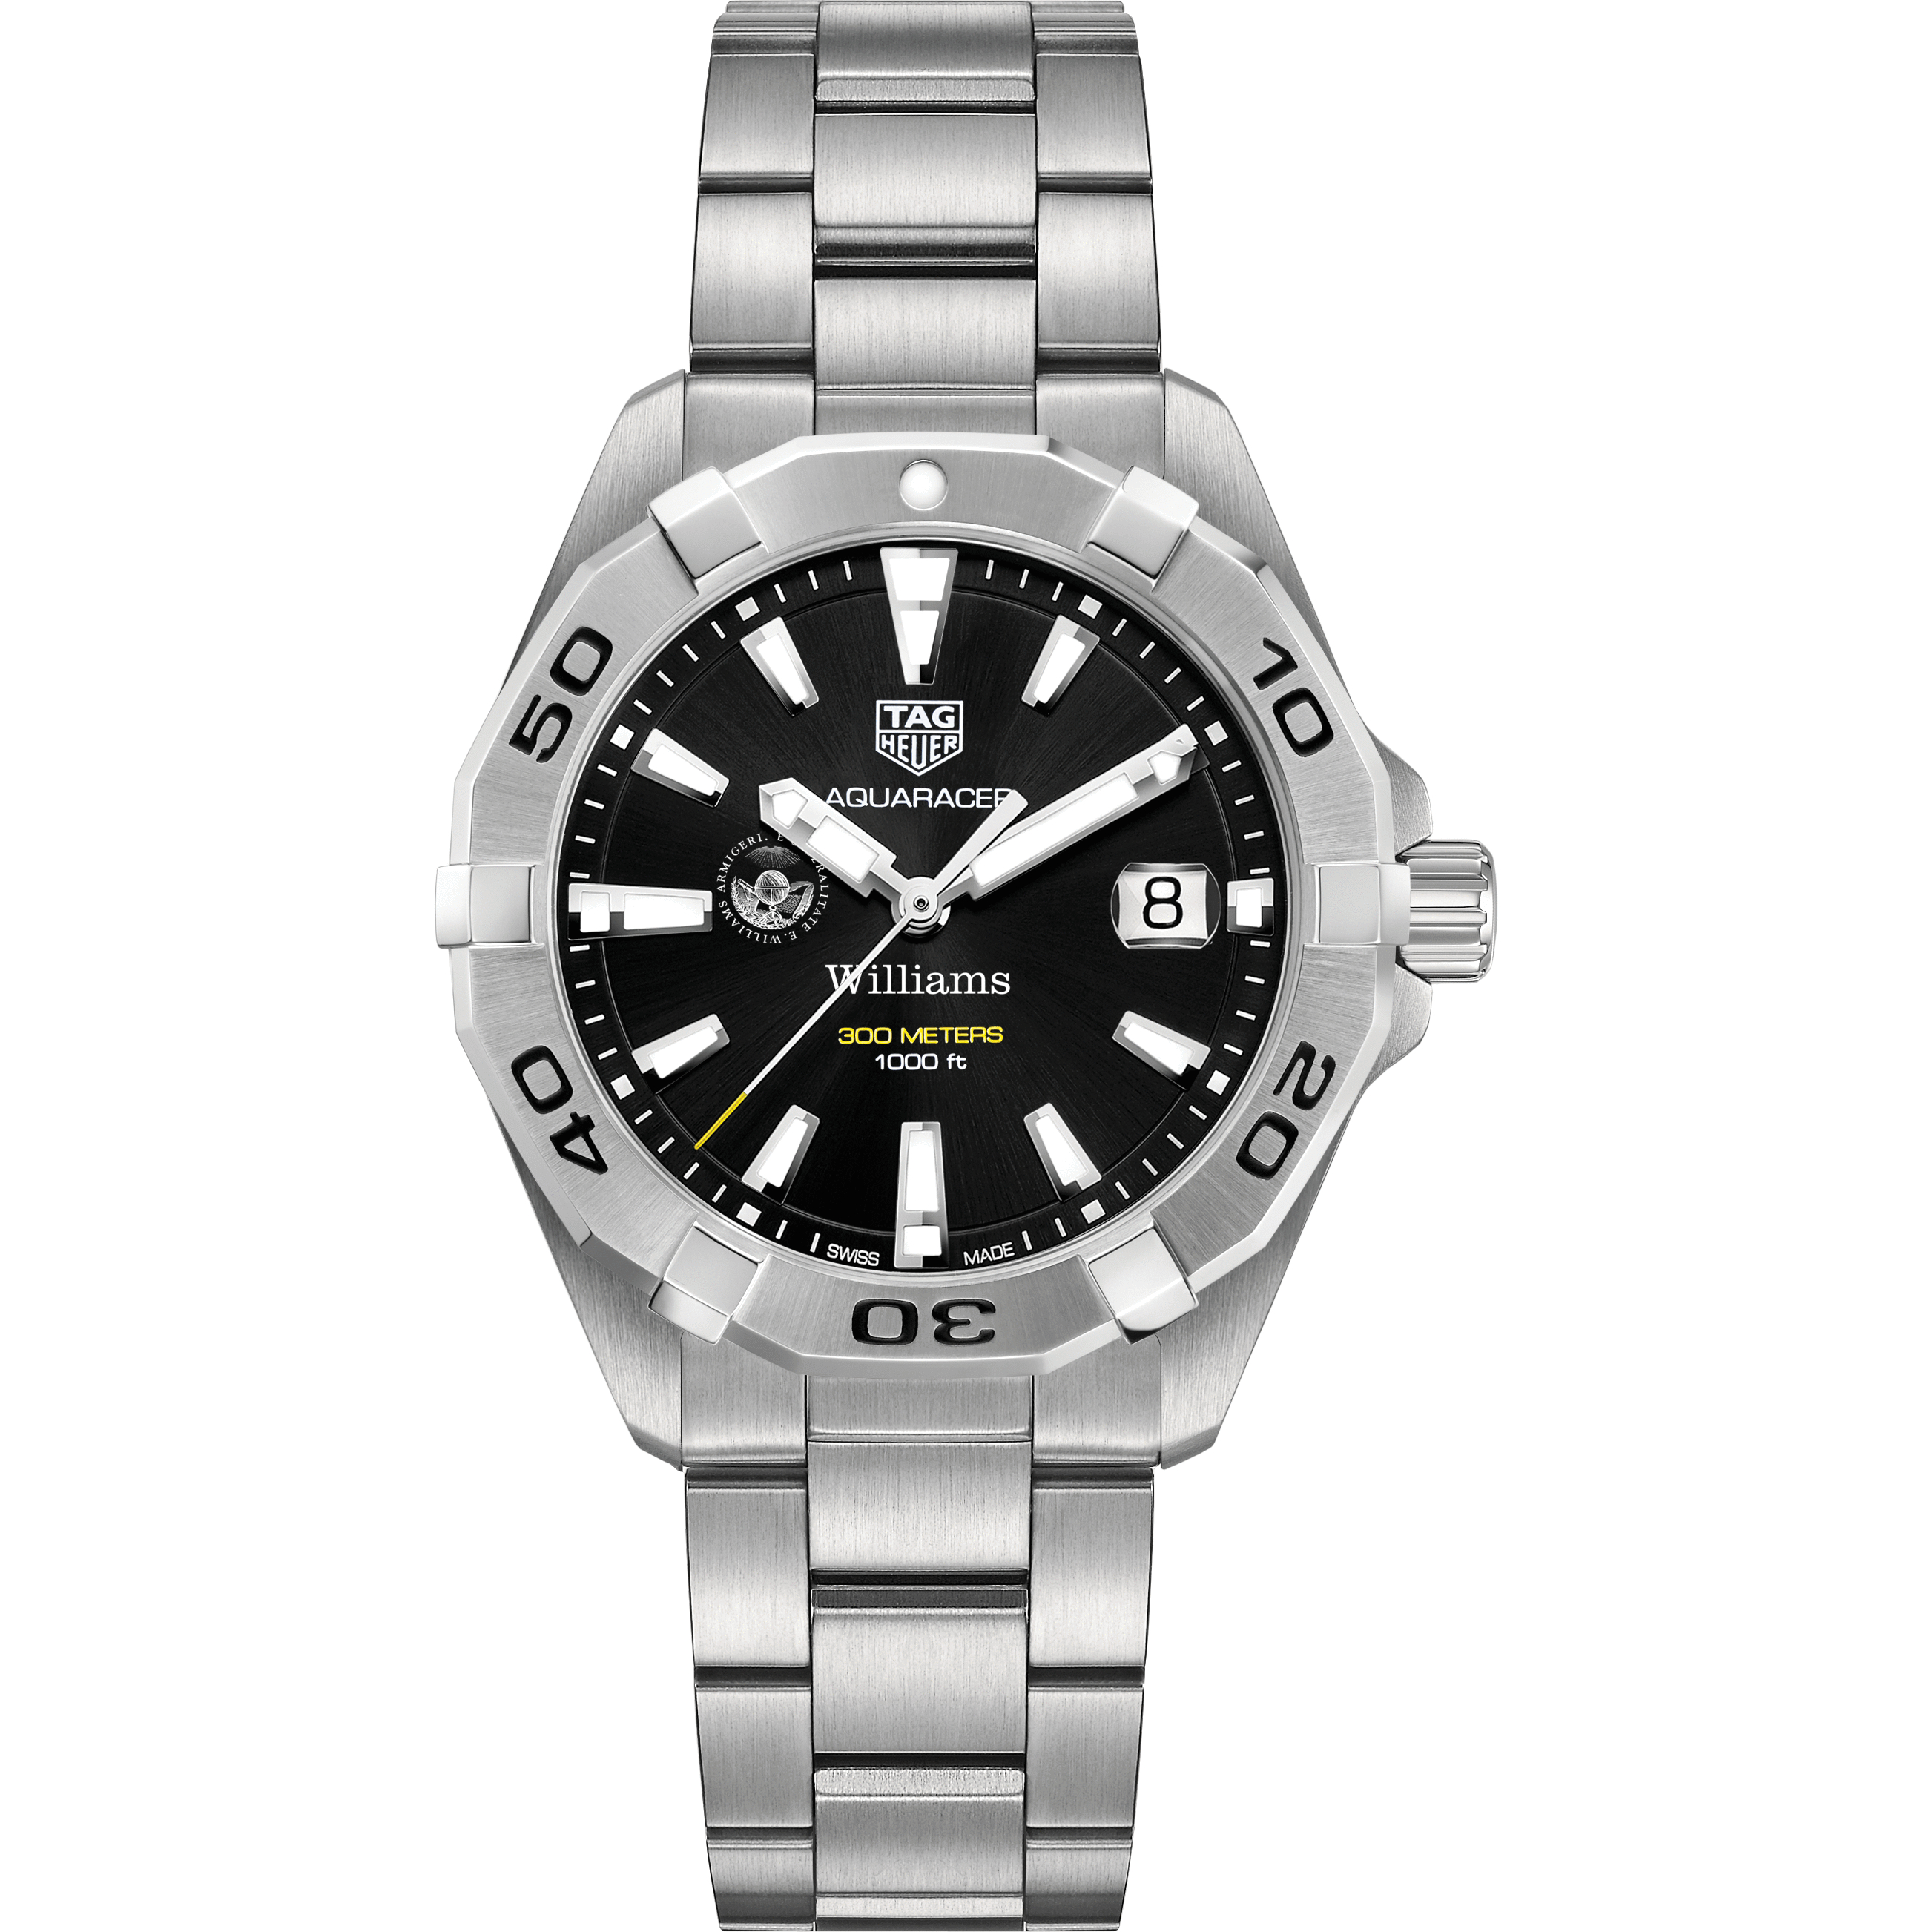 Williams College Men's TAG Heuer Steel Aquaracer with Black Dial - Image 2